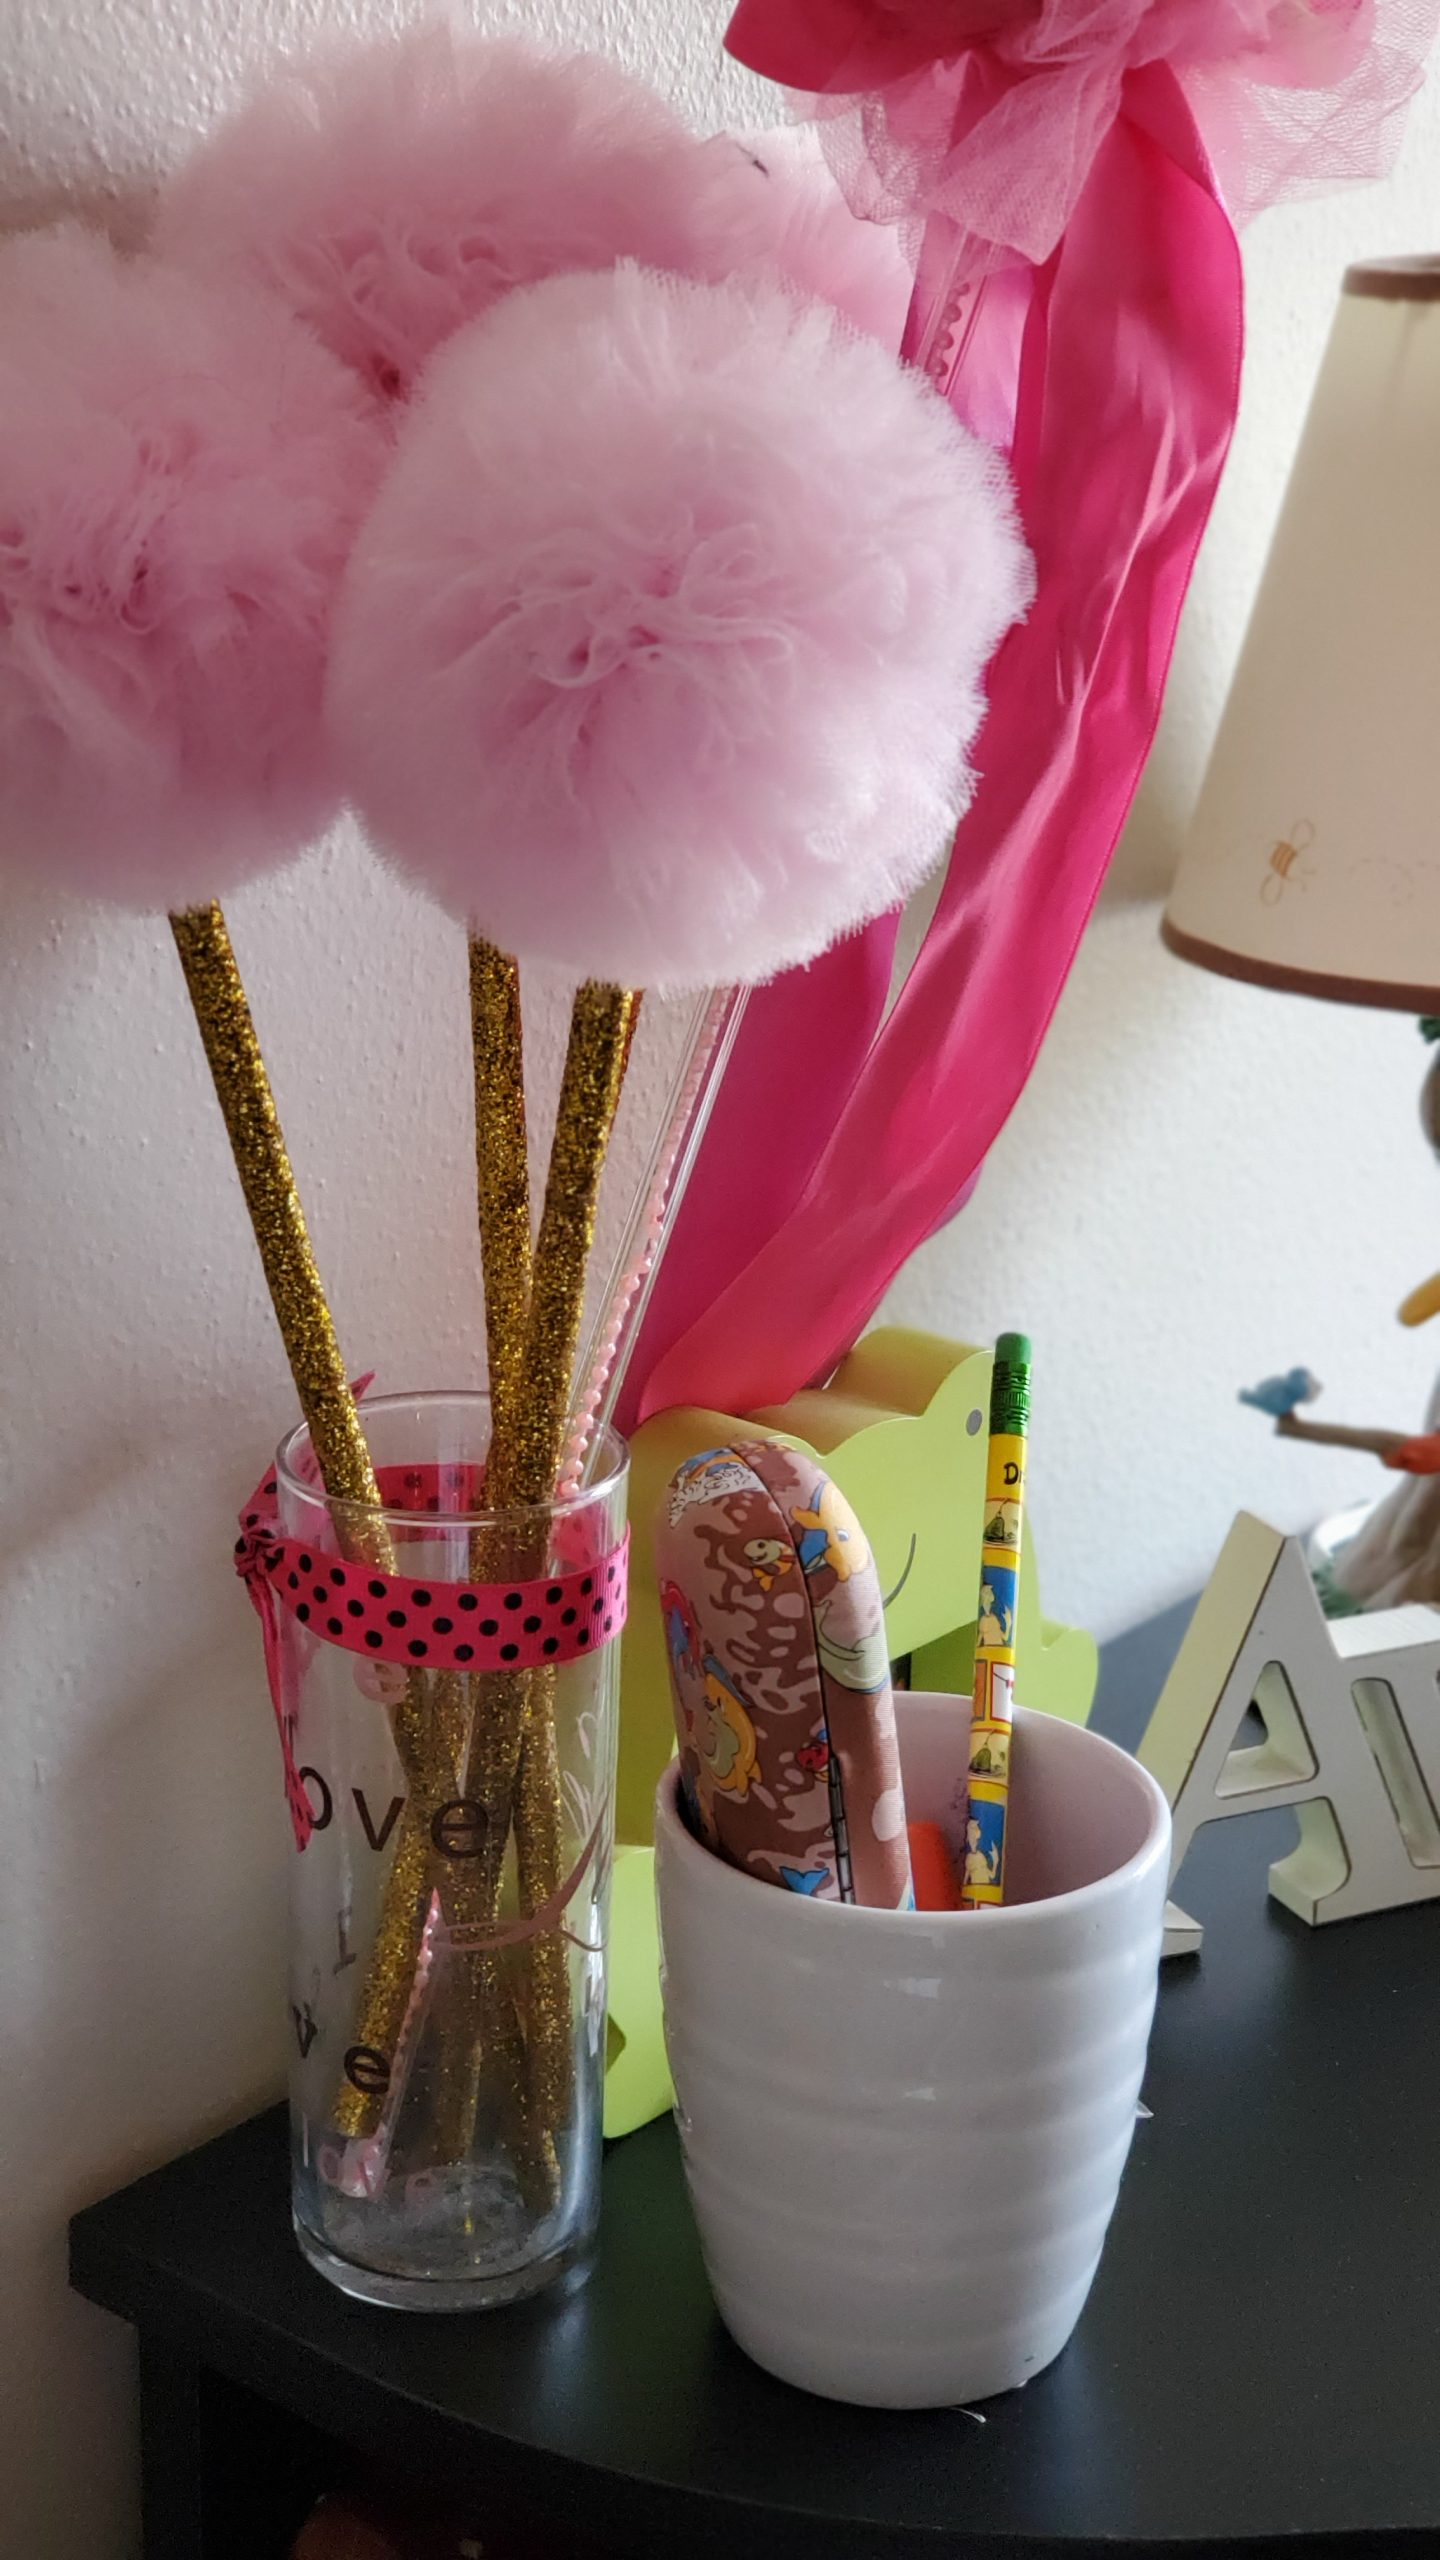 Personal touches on a desk space: handmade wands and a vase for pencils